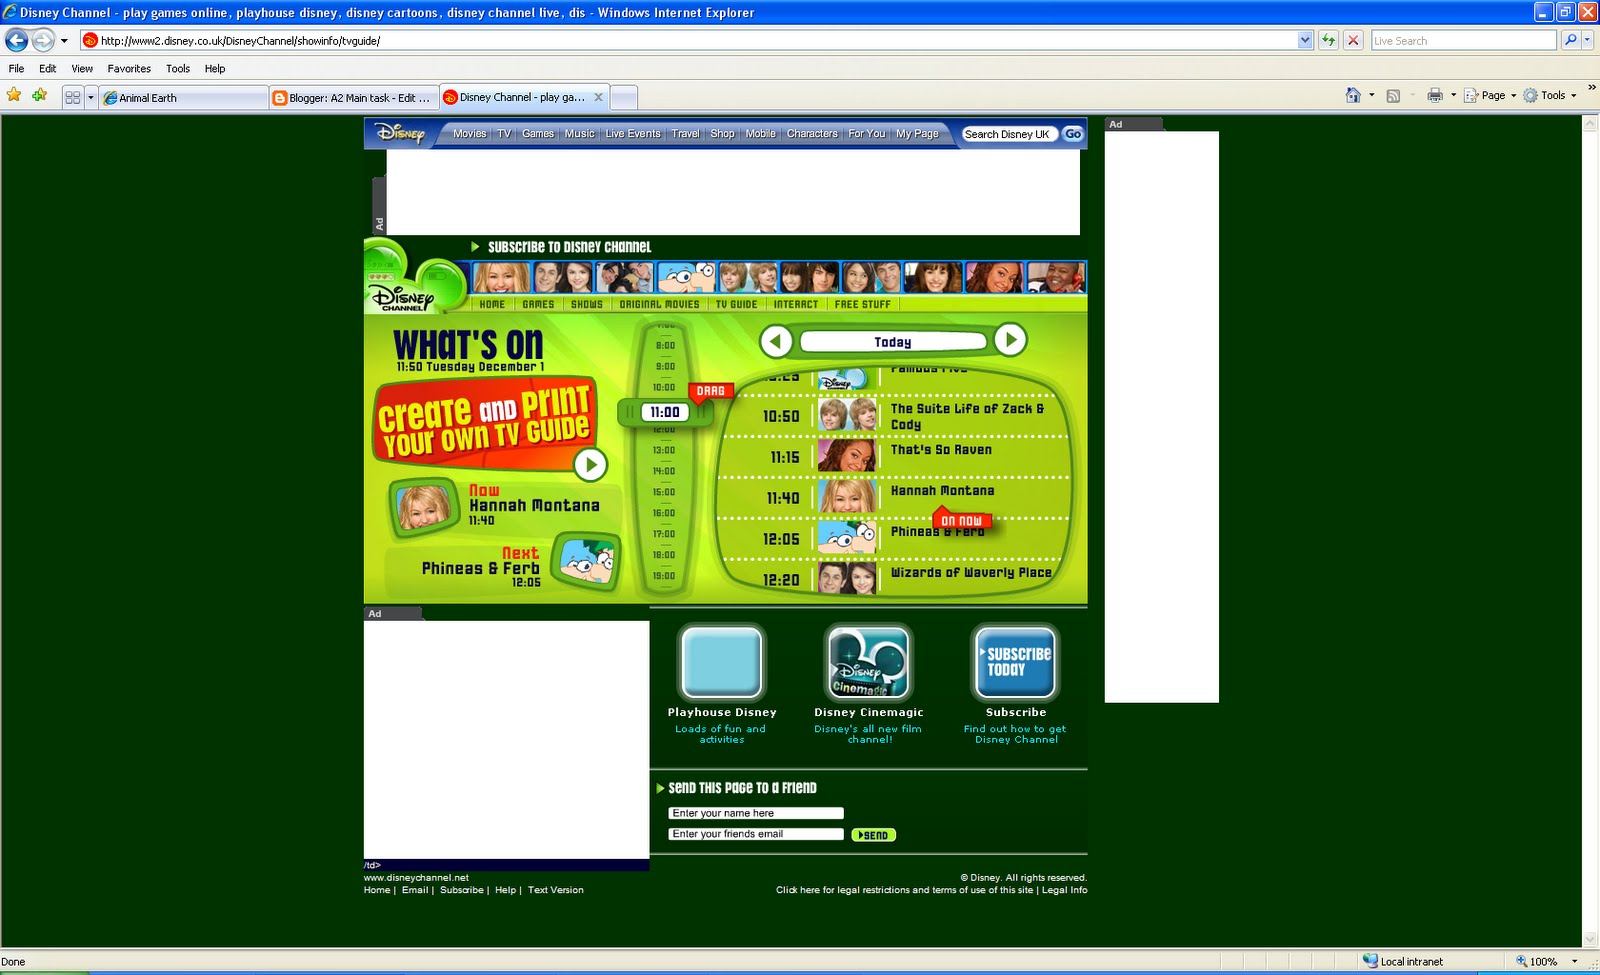 Disney Channel Official Site Picture 7 Games We Played